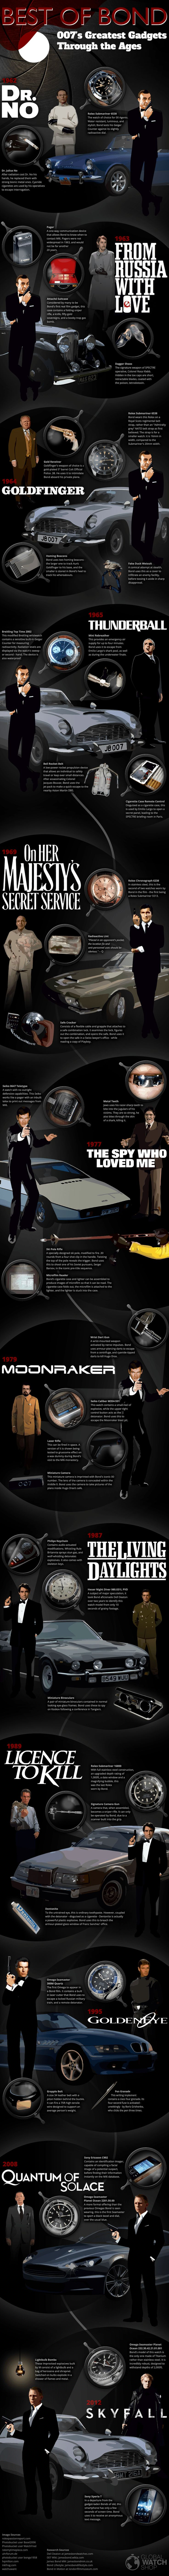 Best of Bond: 007's Greatest Gadgets Through the Ages - Do you fancy an infographic?  There are a lot of them online, but if you want your own please visit http://www.linfografico.com/prezzi/  Online girano molte infografiche, se ne vuoi realizzare una tutta tua visita http://www.linfografico.com/prezzi/